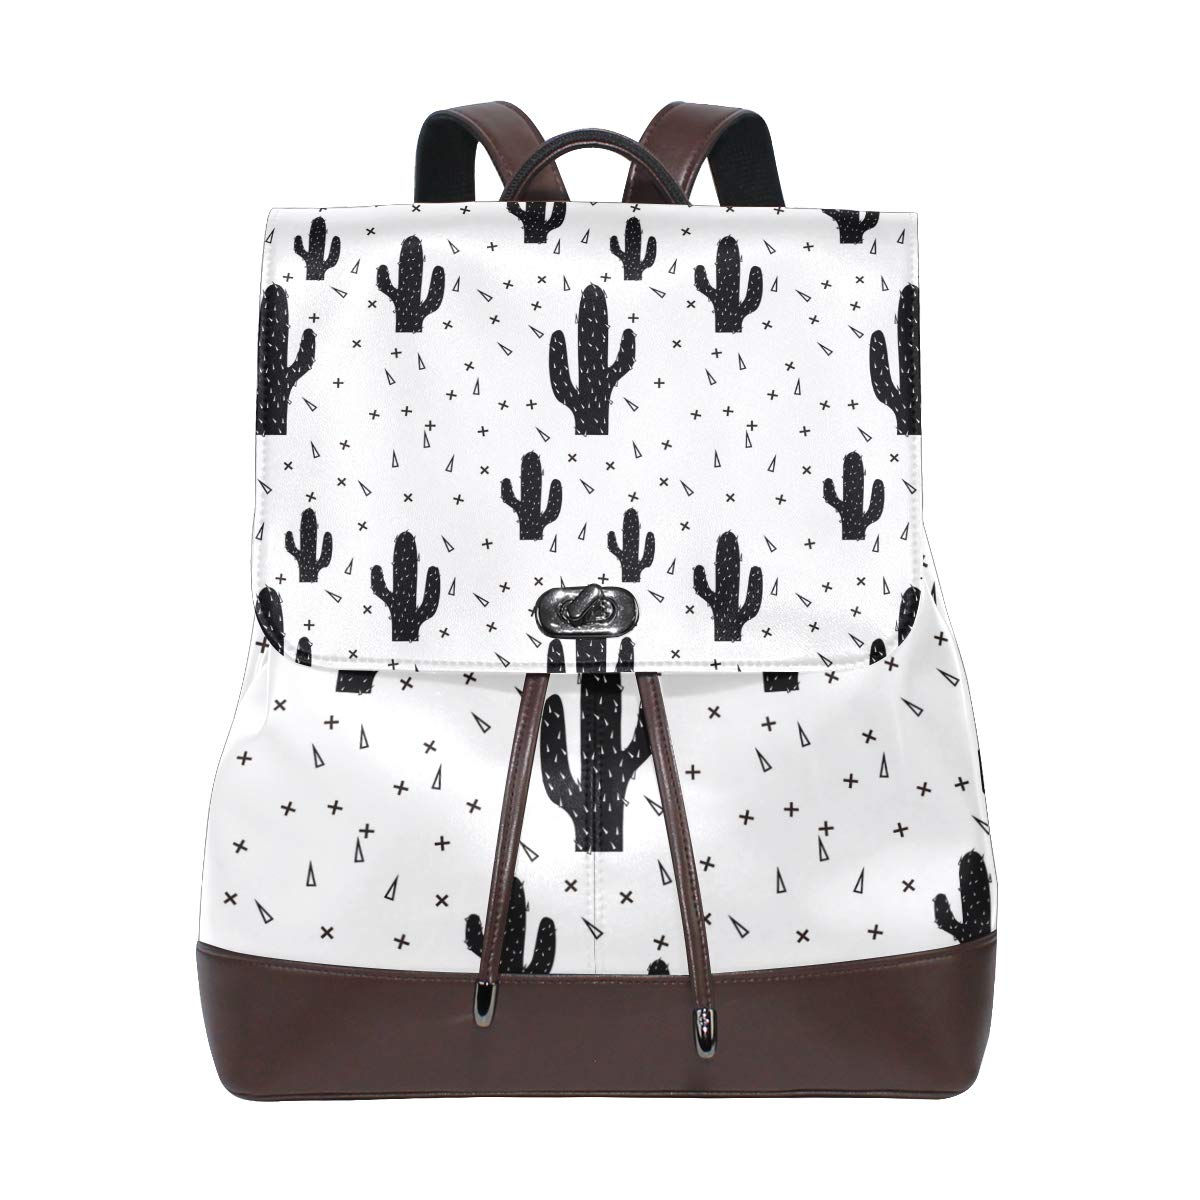 Leather Abstract Modern Cactus Black Backpack Daypack Bag Women